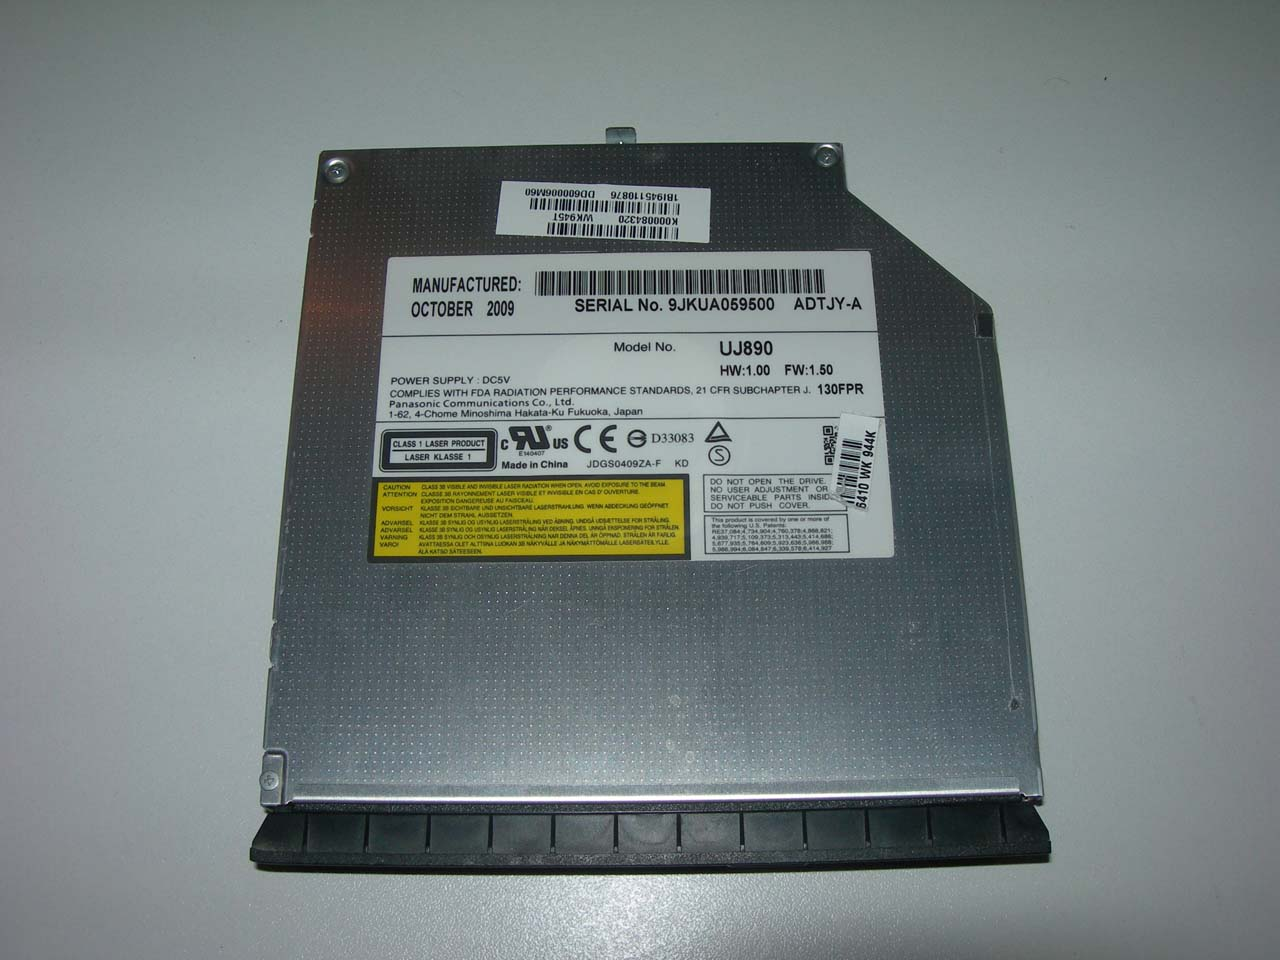 graveur dvd sata uj890 pour toshiba satellite l505 10n l505 ebay. Black Bedroom Furniture Sets. Home Design Ideas